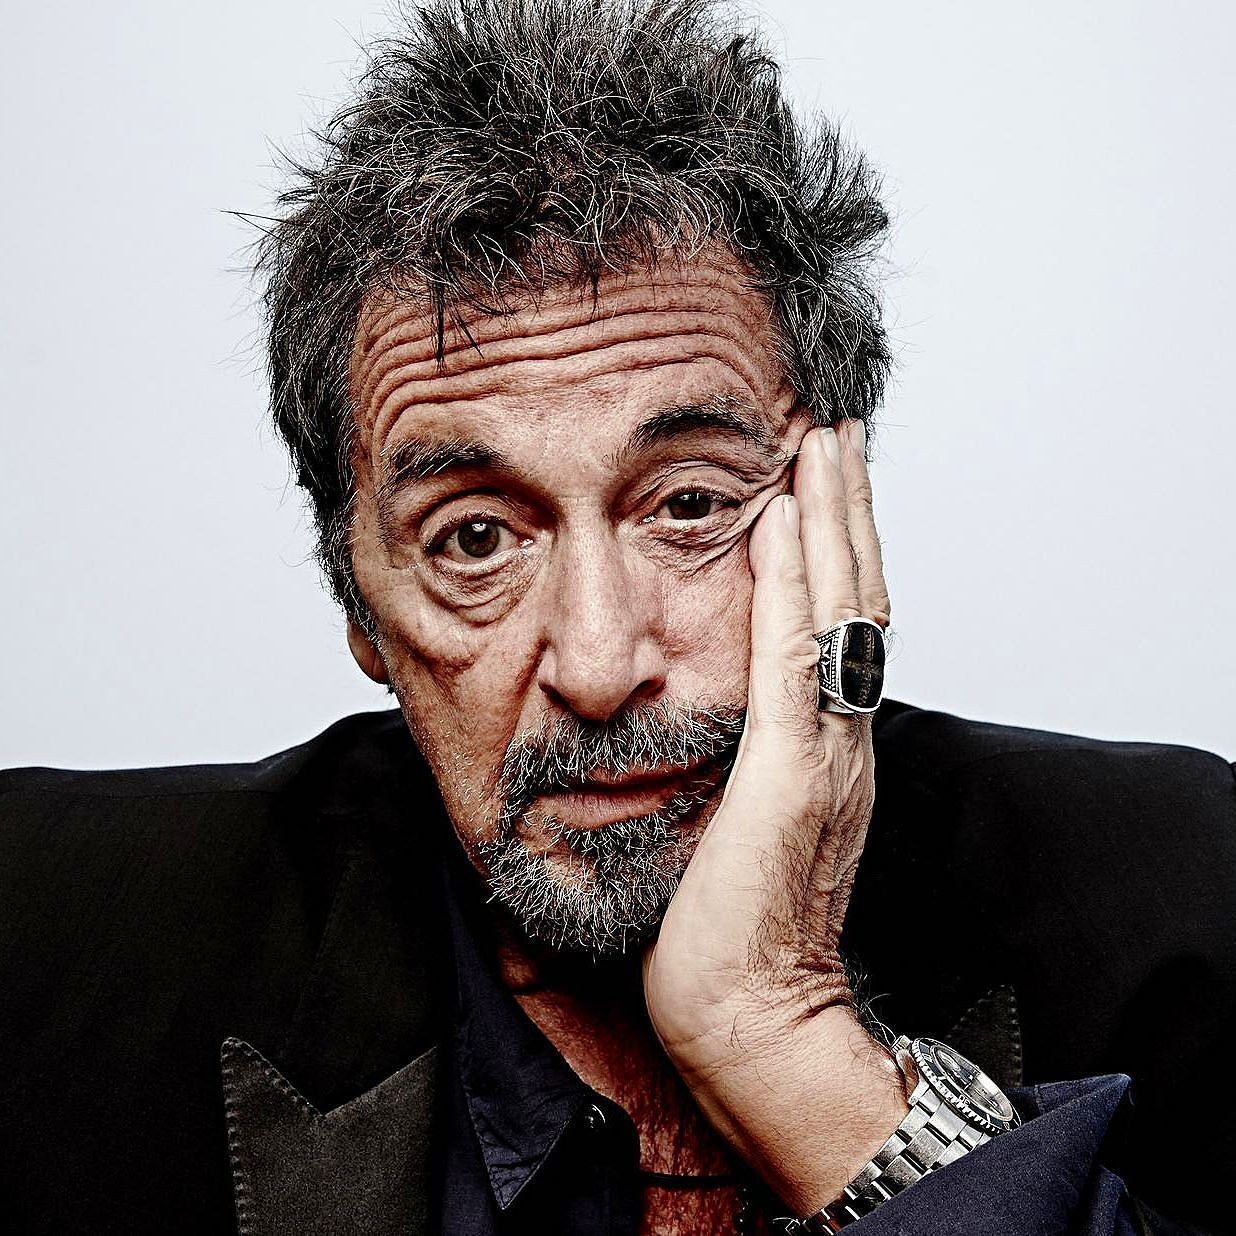 Al Pacino Is Considered To Be One Of The Greatest Actors